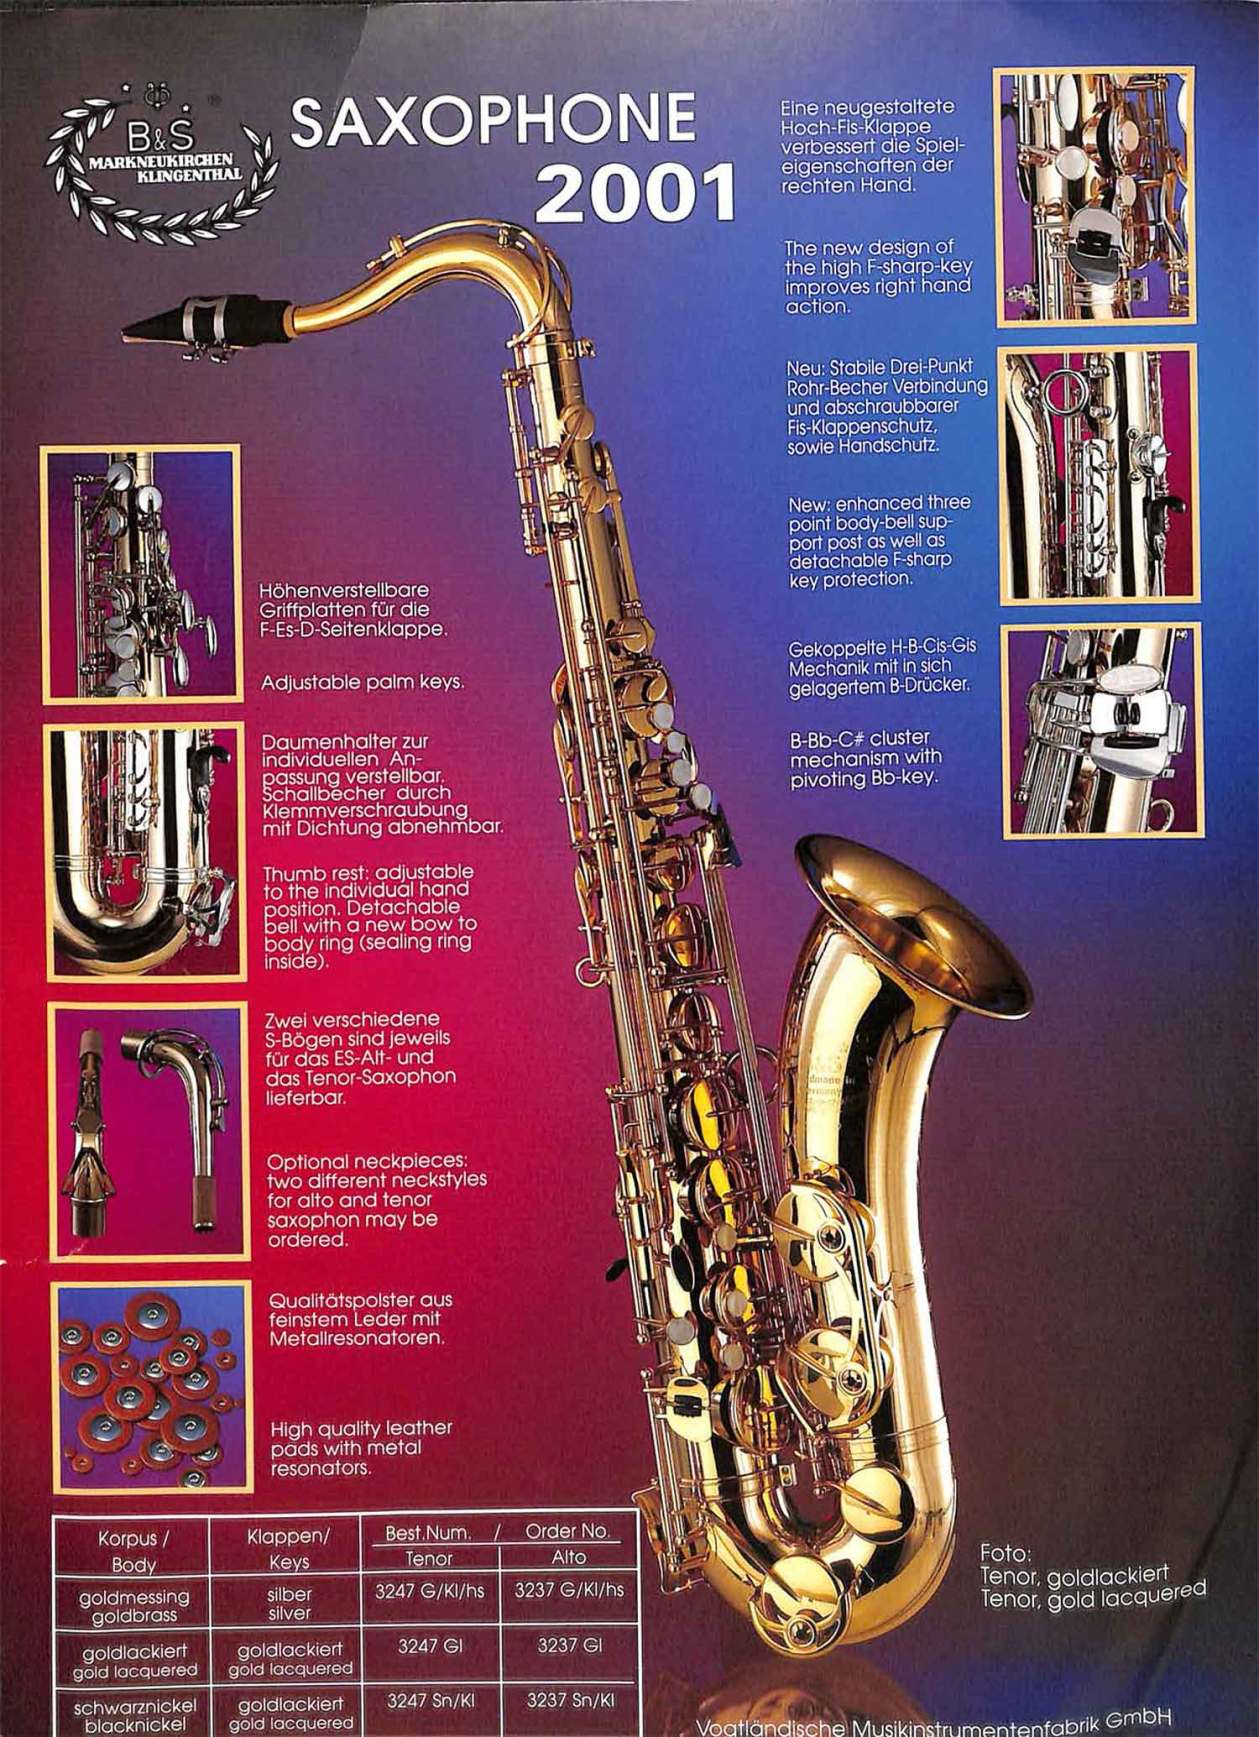 B&S saxophone, Series 2001, German saxophone, color brochure, tenor sax